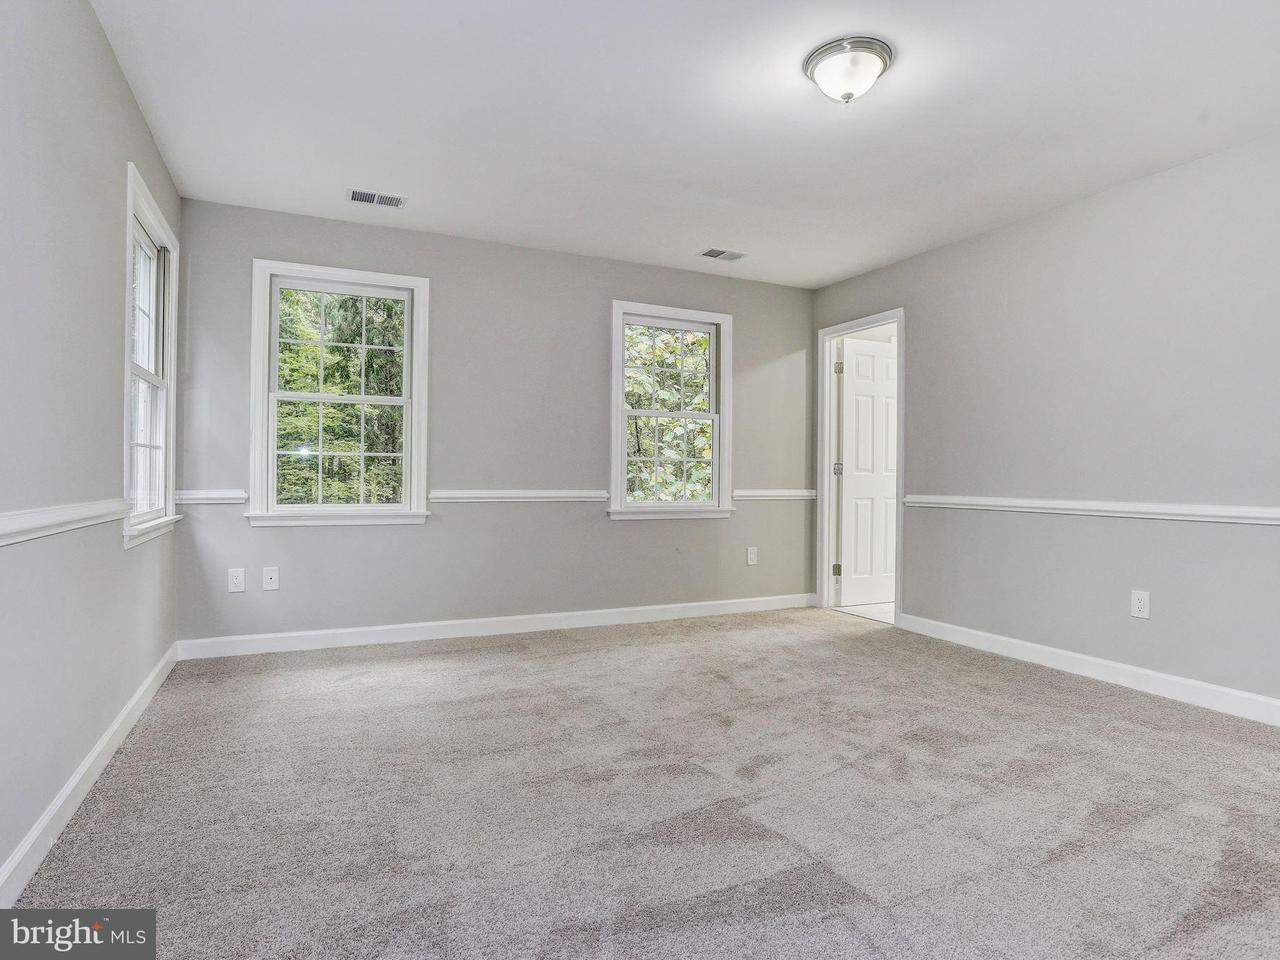 Additional photo for property listing at 1280 CROWS FOOT Road 1280 CROWS FOOT Road Marriottsville, Maryland 21104 Estados Unidos